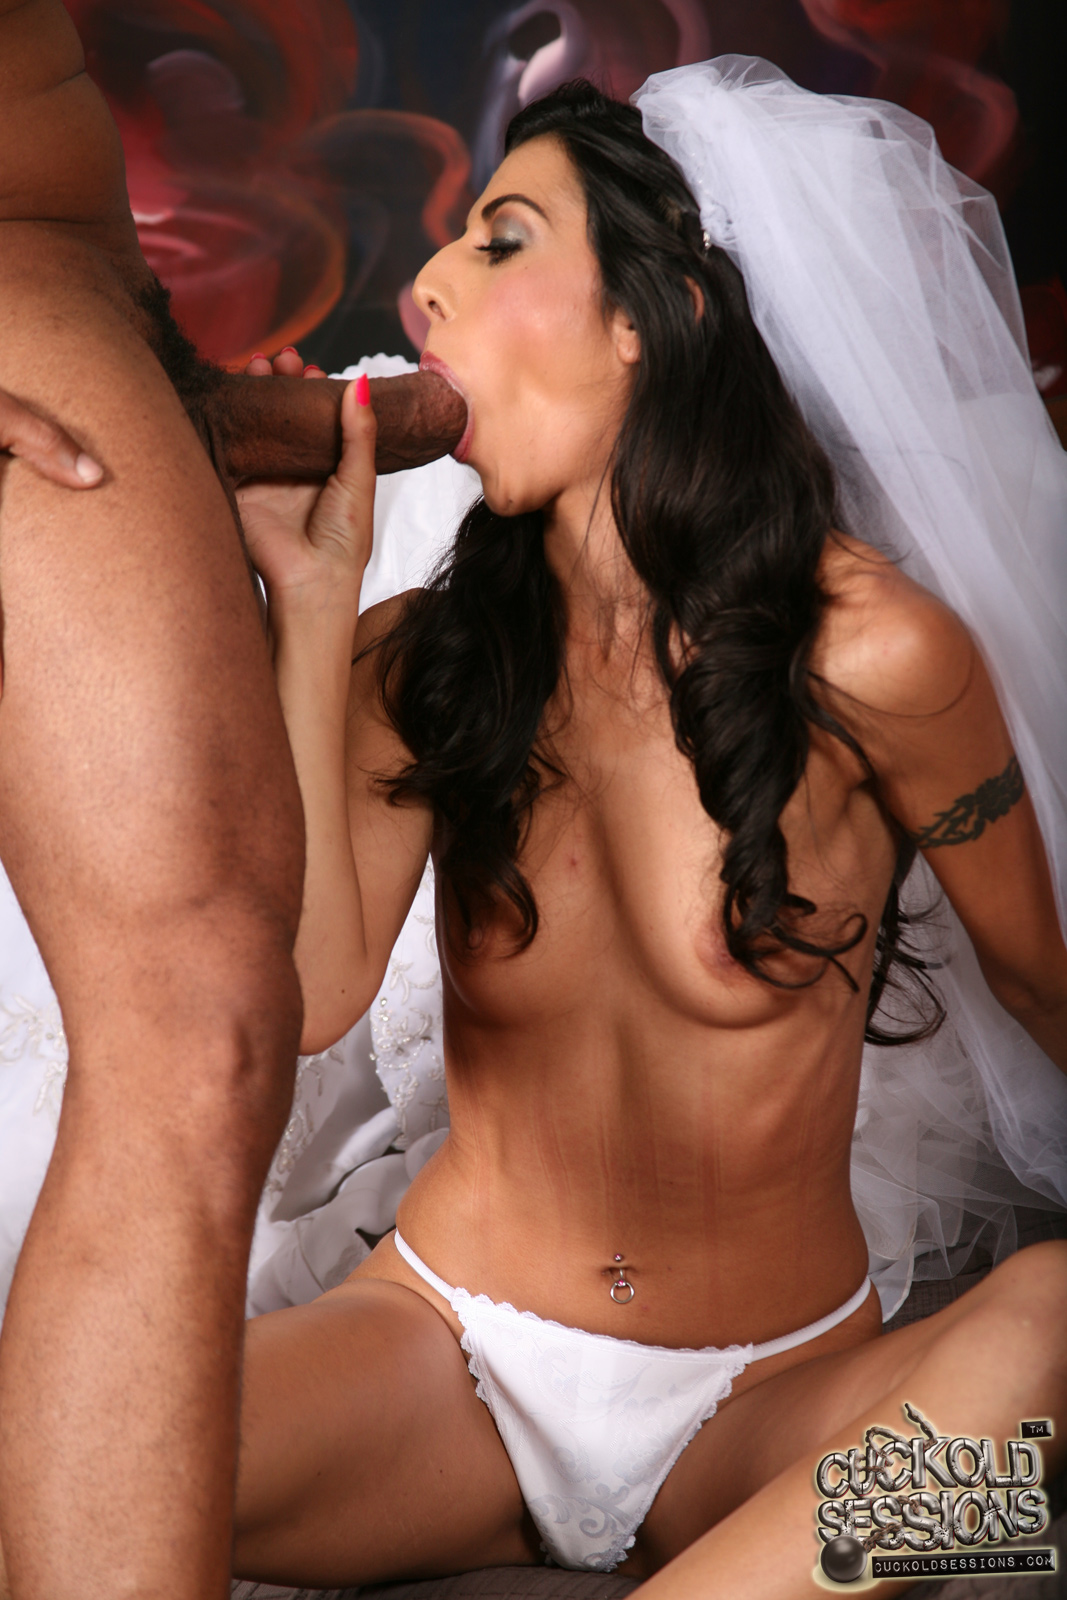 galleries cuckoldsessions content lou charmelle pic 14